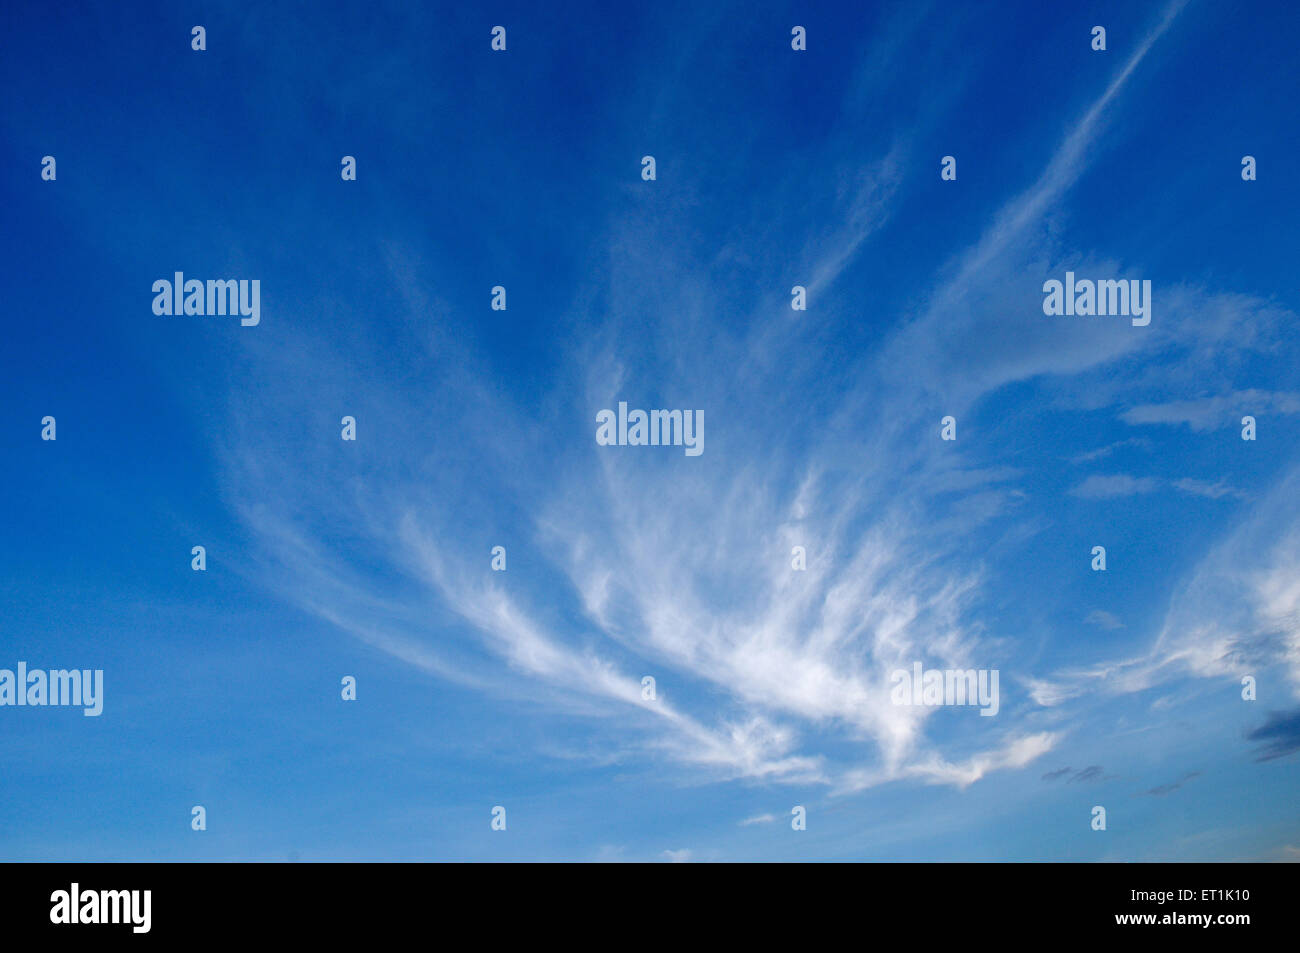 White cloud formation against blue skies 17 November 2009 - Stock Image